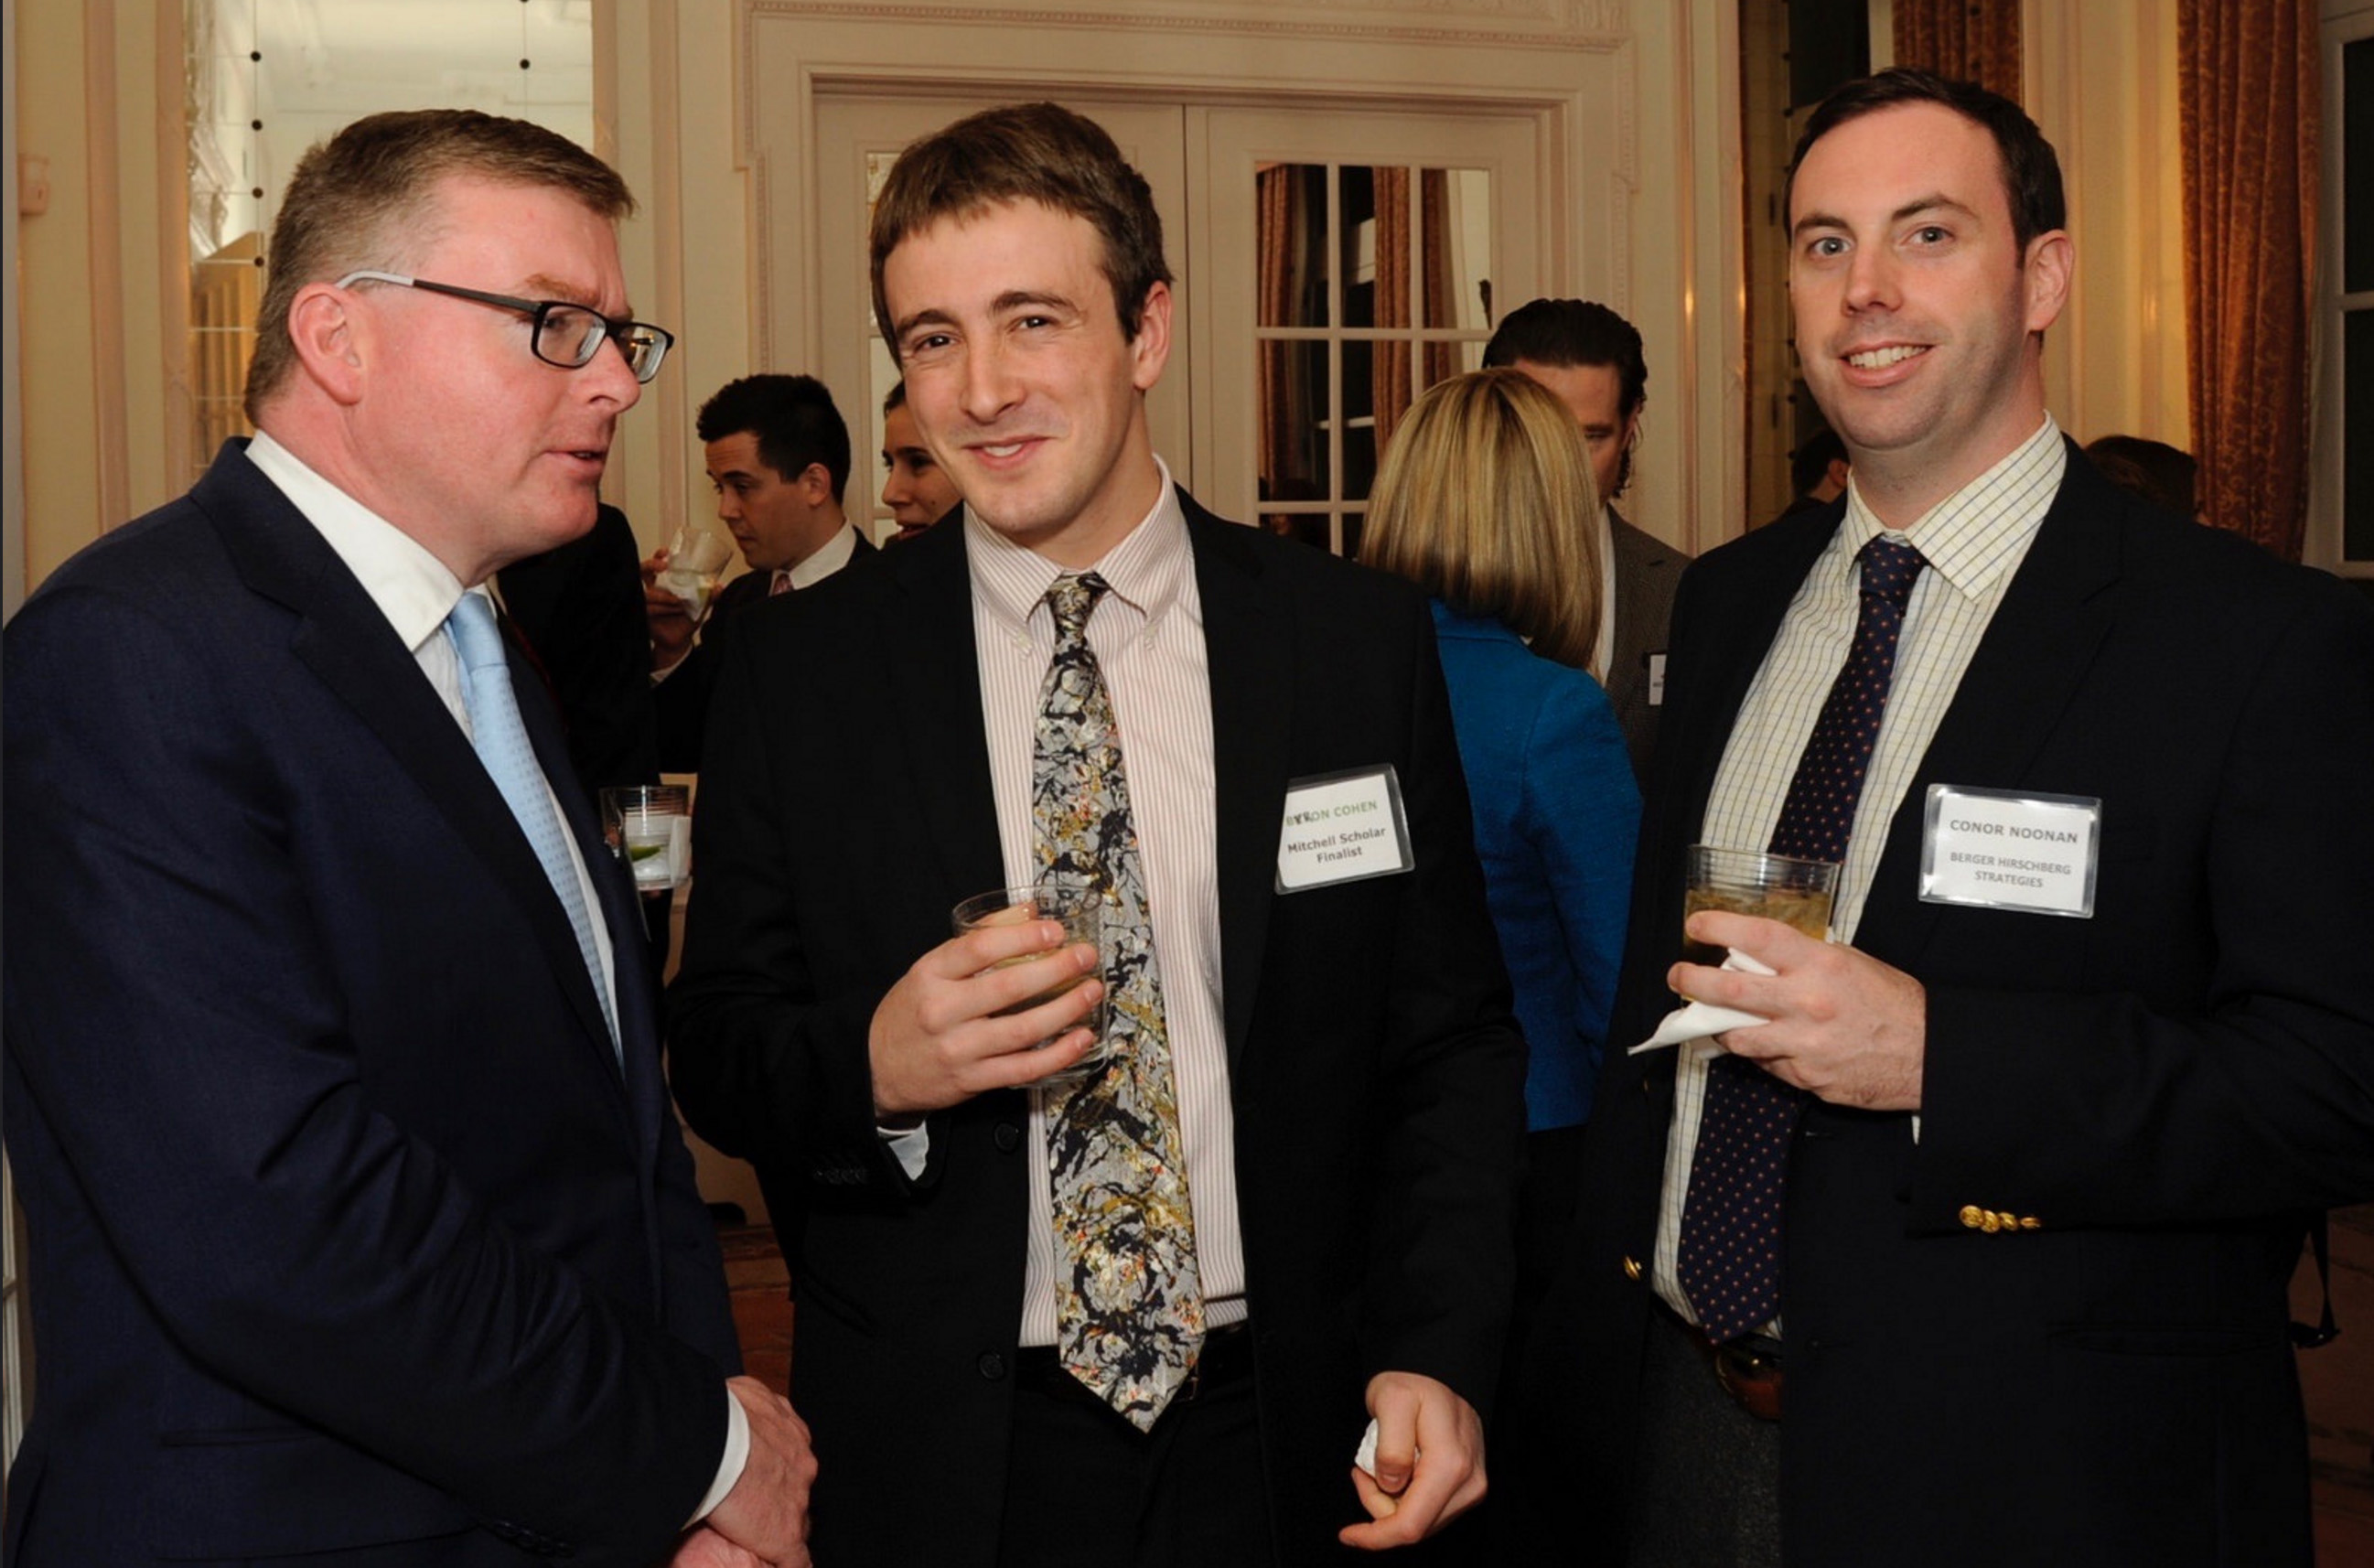 Michael Lonergan, Byron Cohen and Conor Noonan